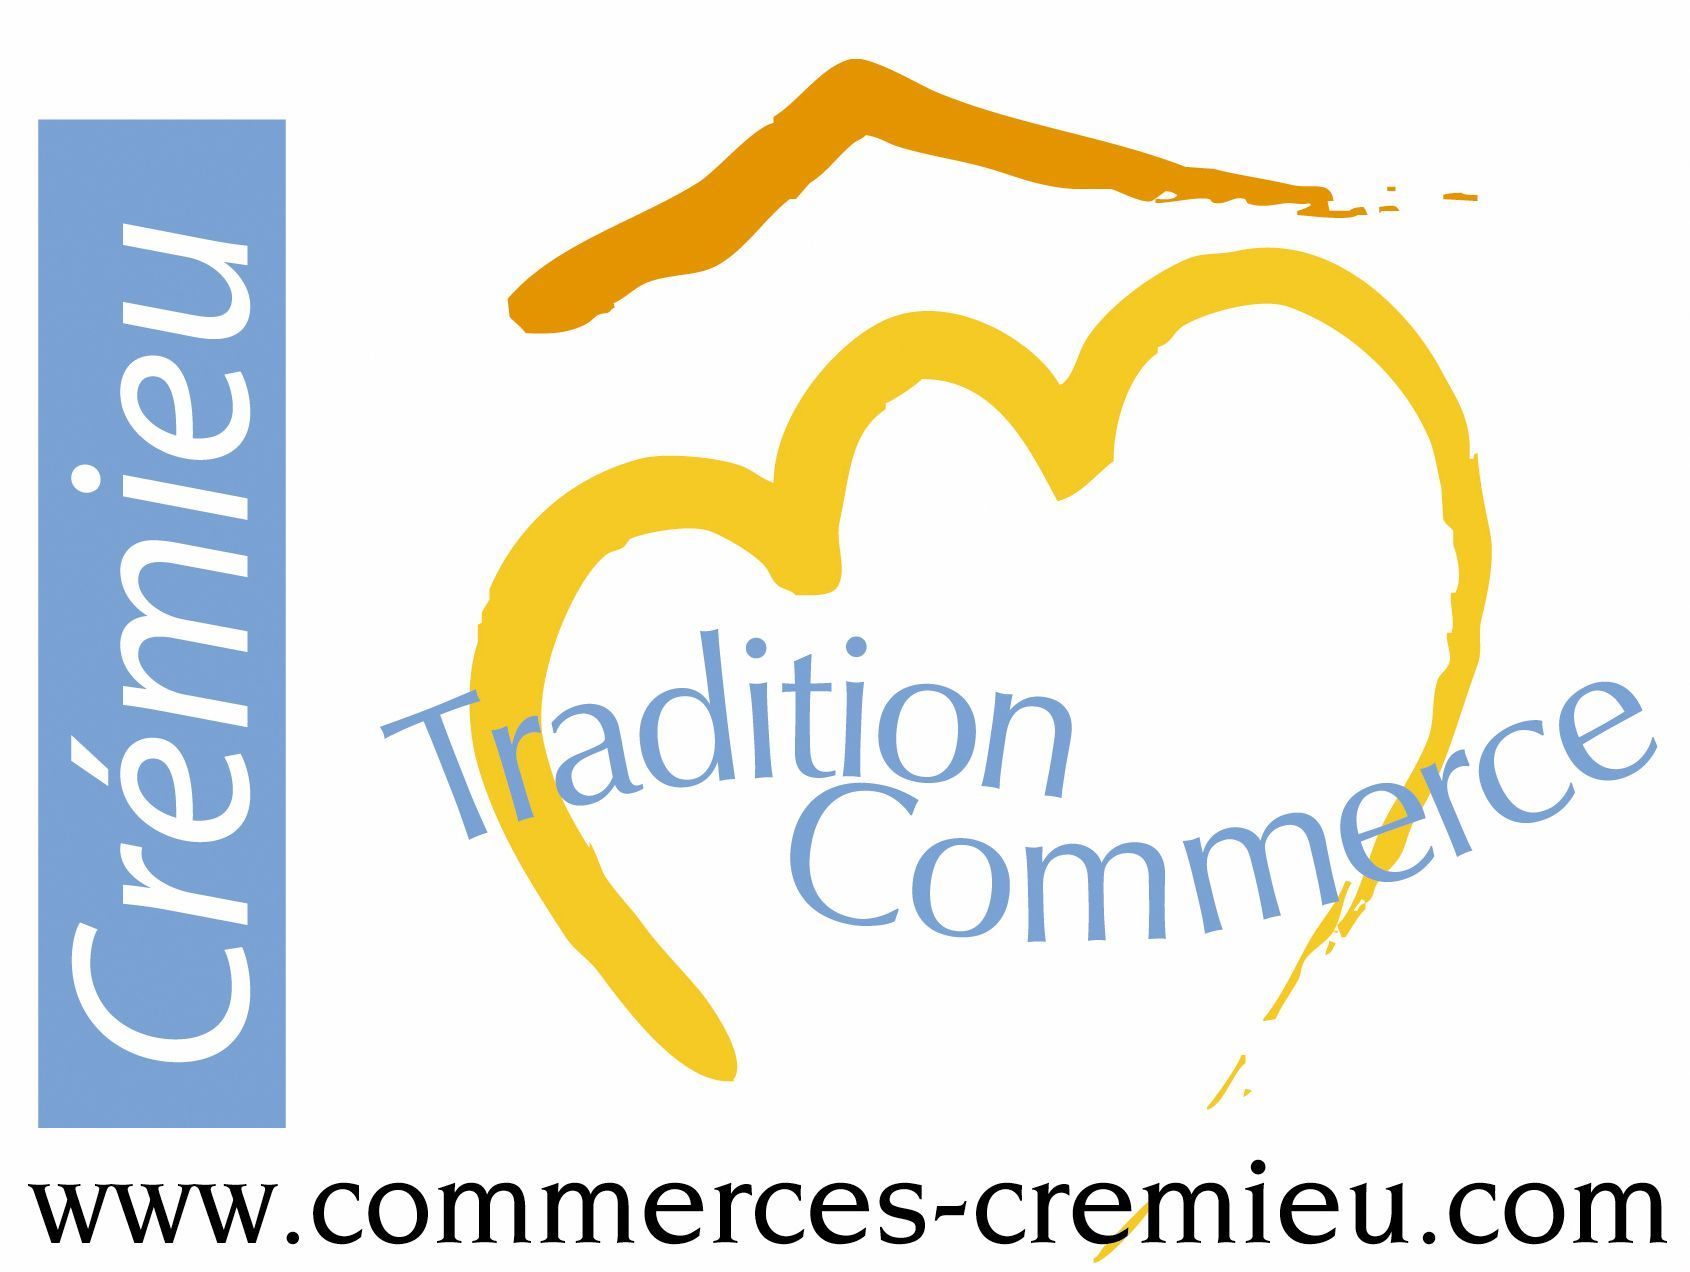 CREMIEU - ACABRED - CTC Cr�mieu Tradition Commerce